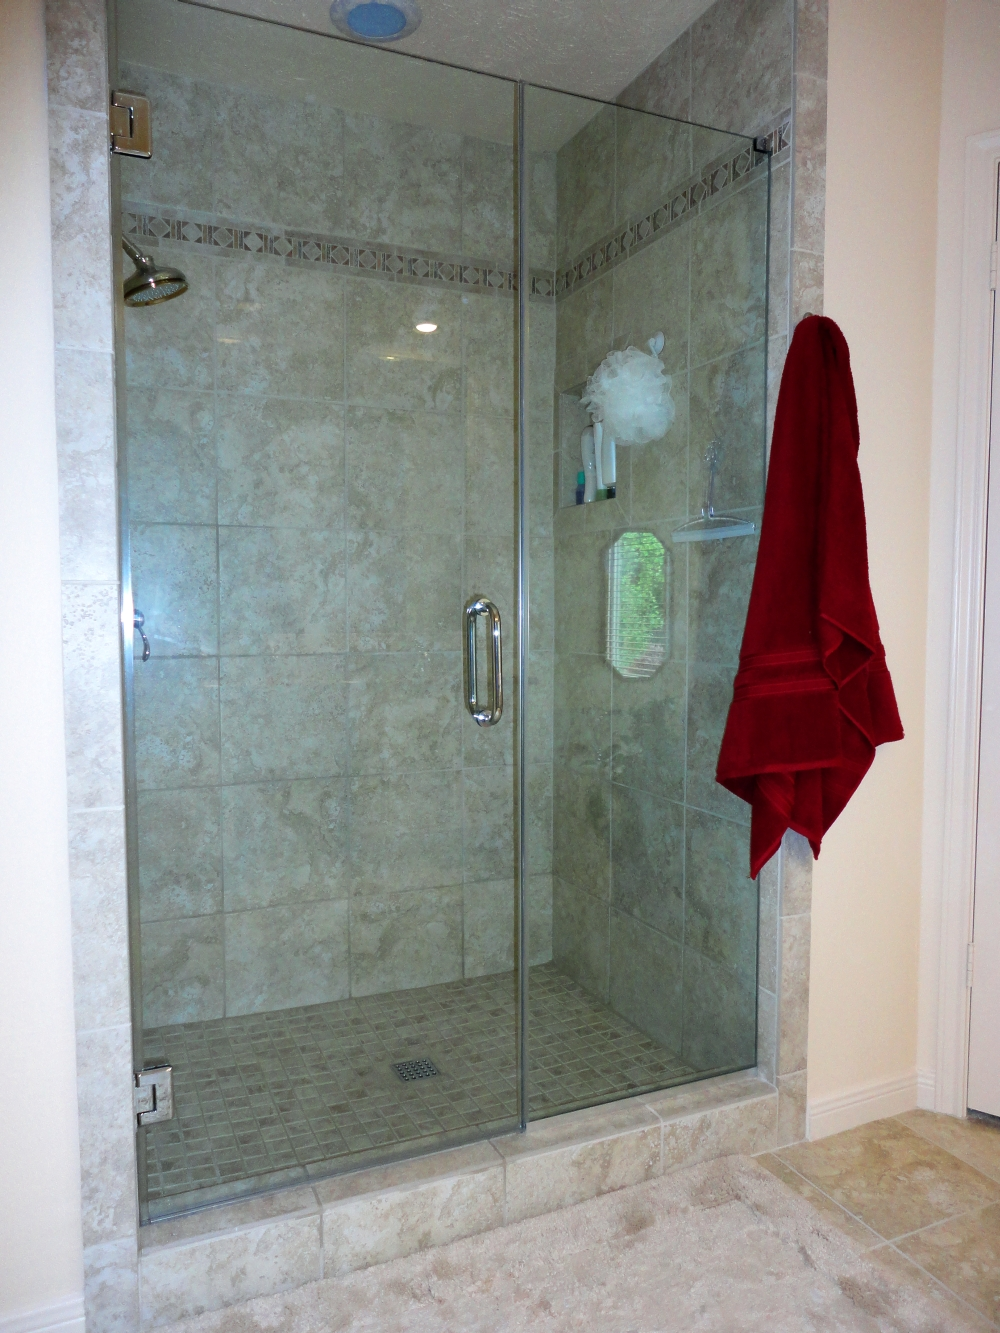 About Shower Doors Frameless Doors Glass Enclosures How They Are